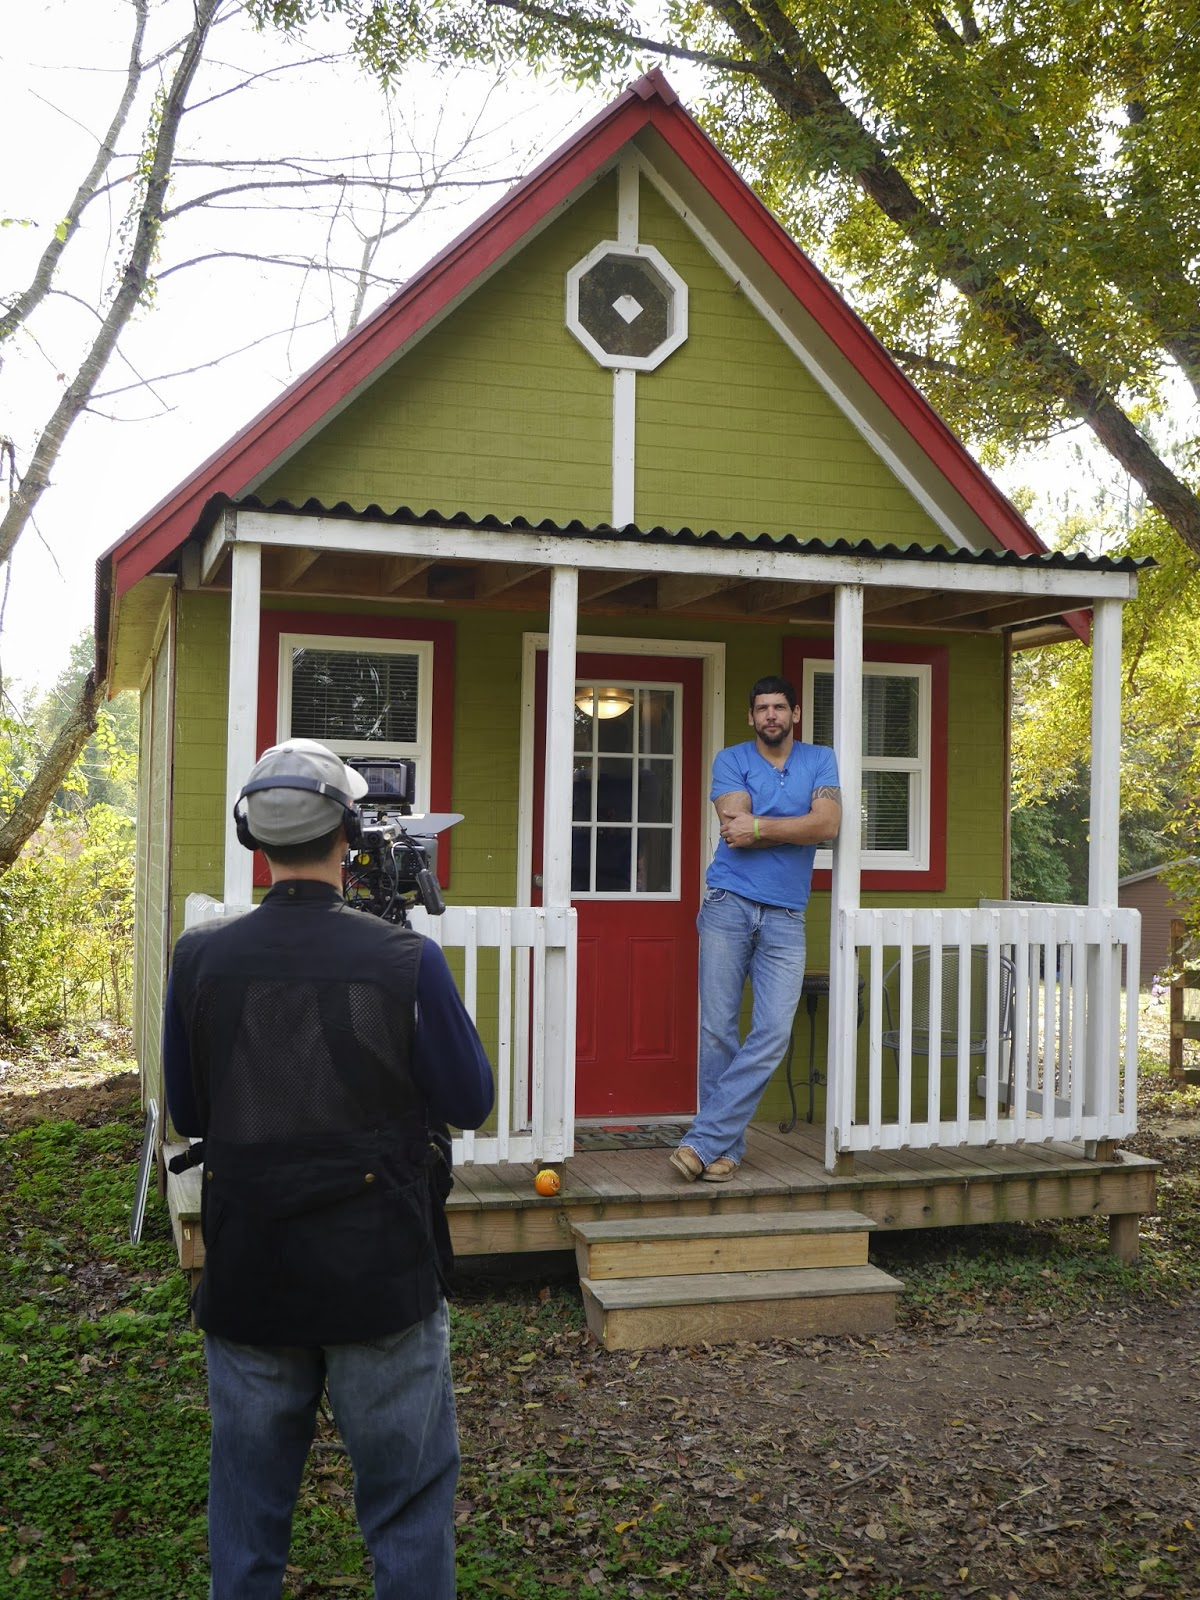 Tiny Home Designs: Relaxshacks.com: TINY HOUSE BUILDING And DESIGN WORKSHOP